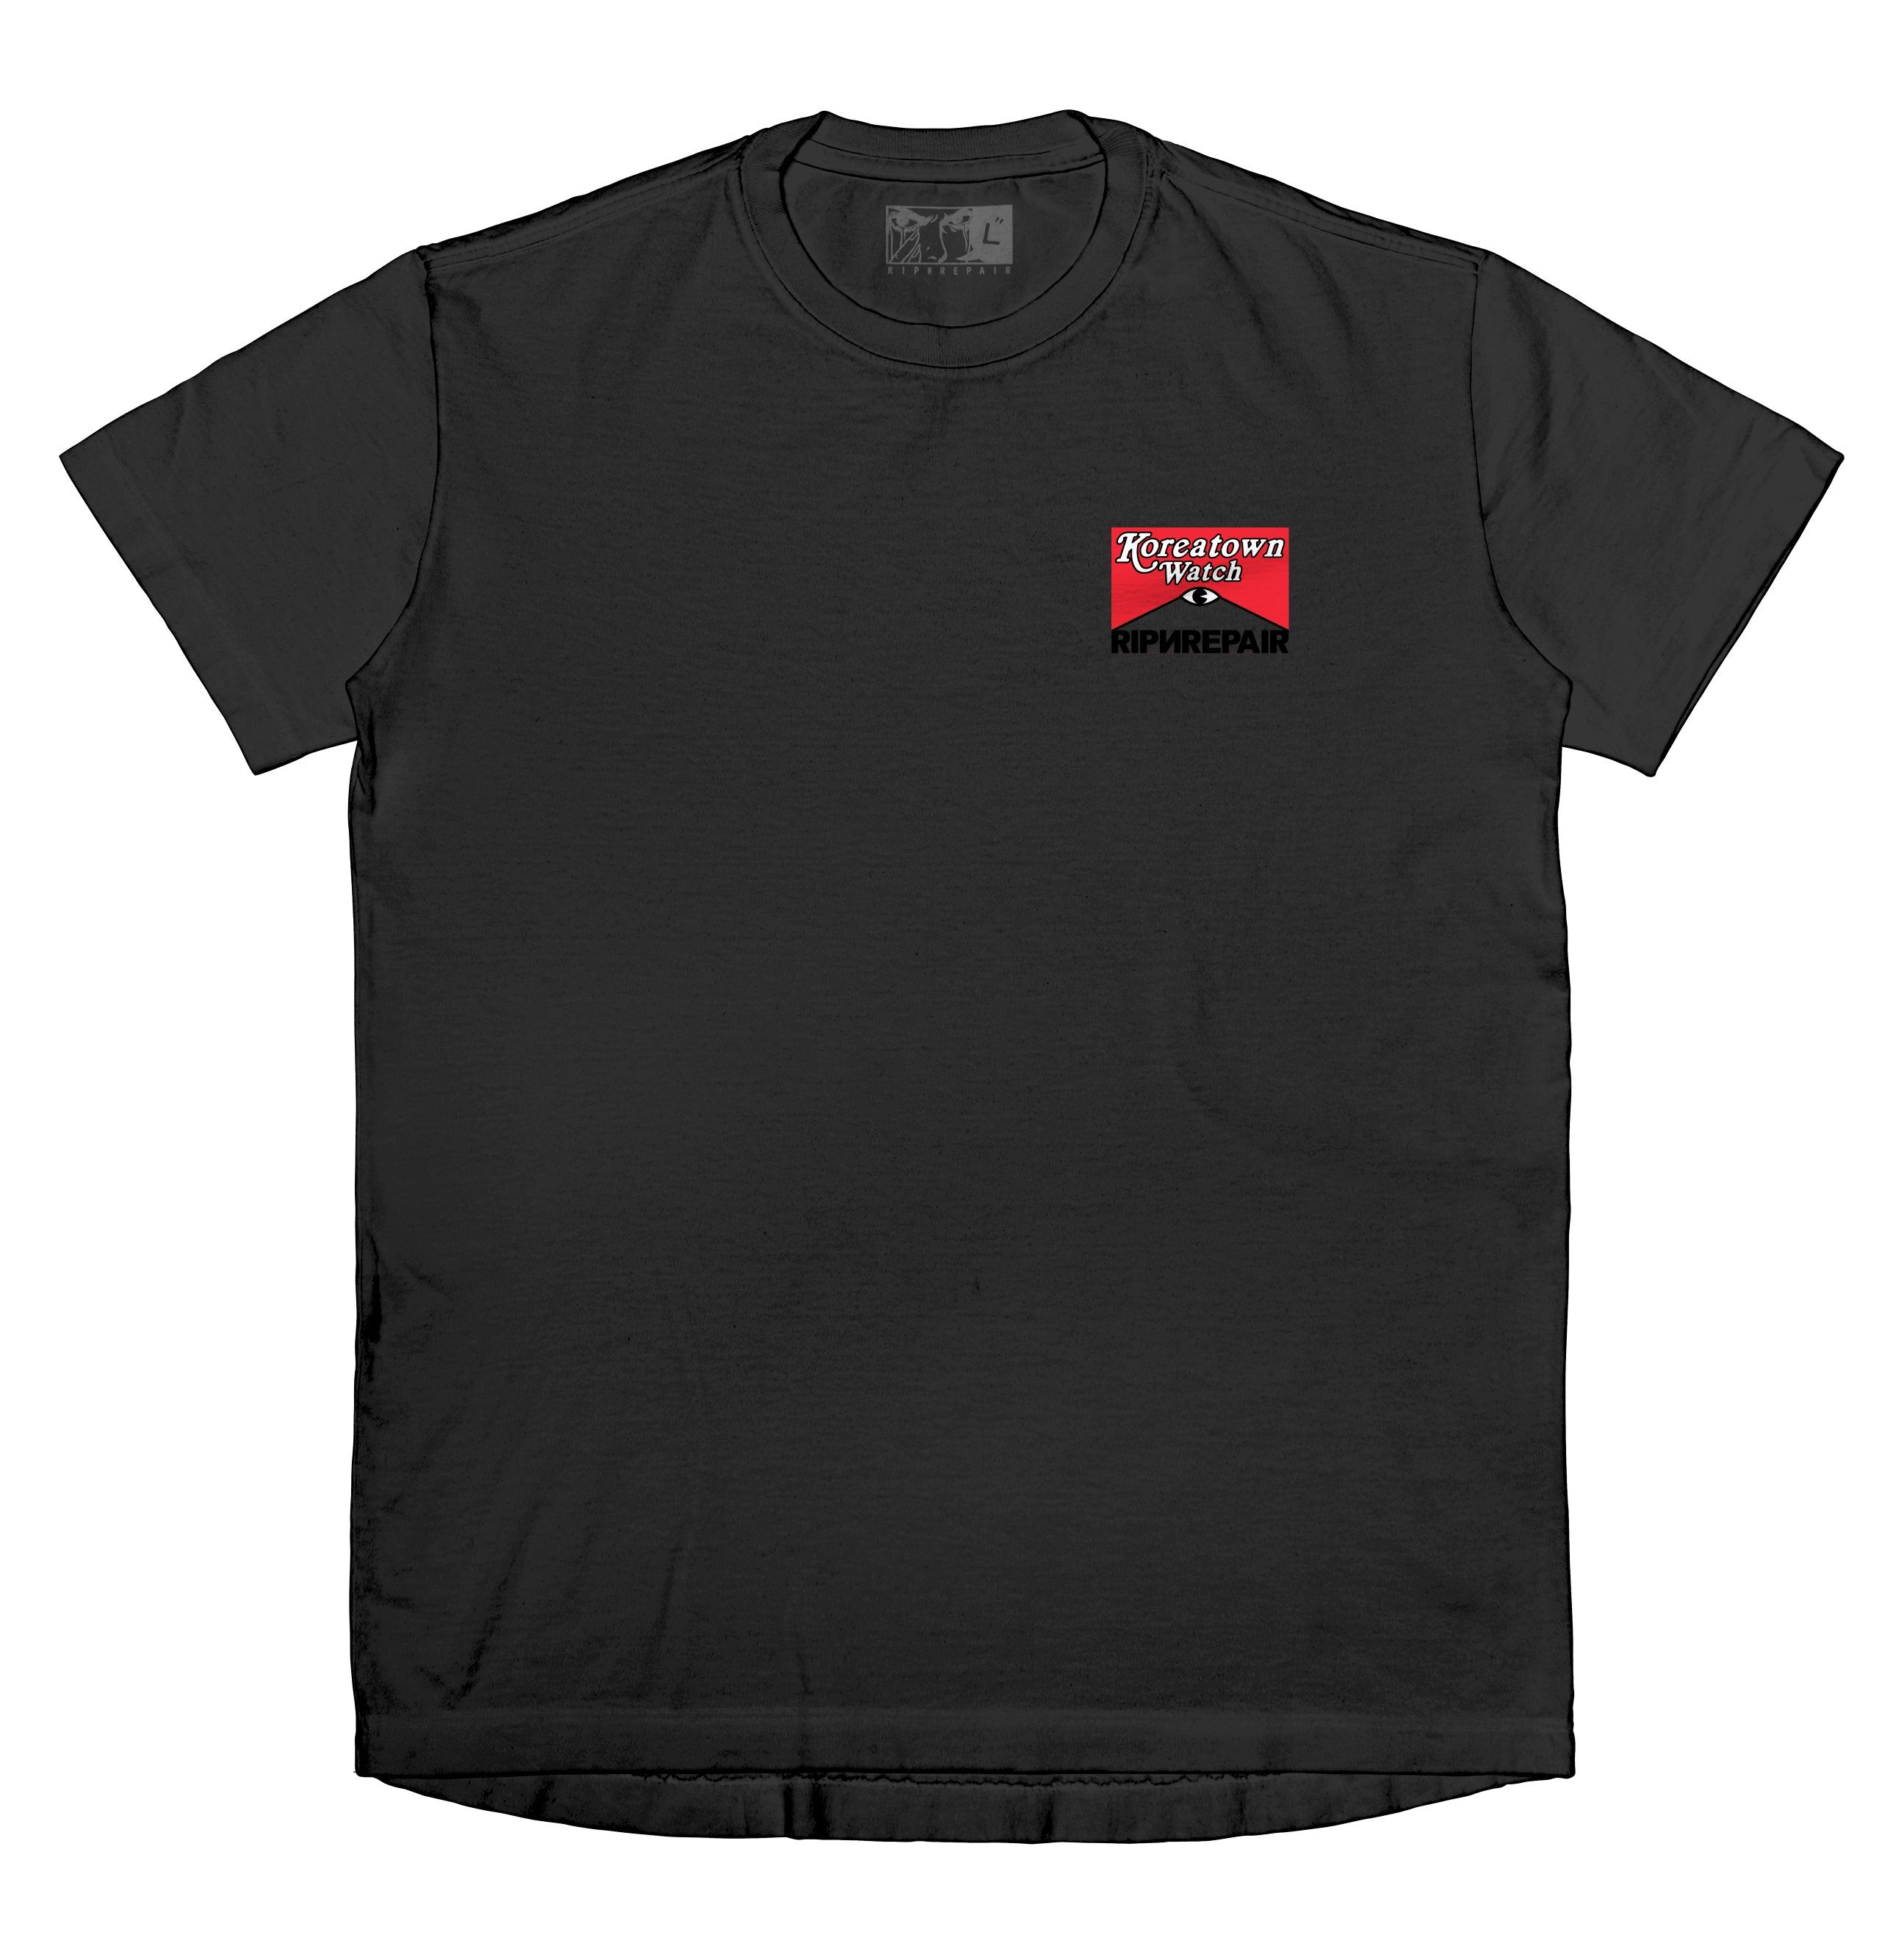 Neighborhood Watch - T-Shirt (Black) - RIPNRPR